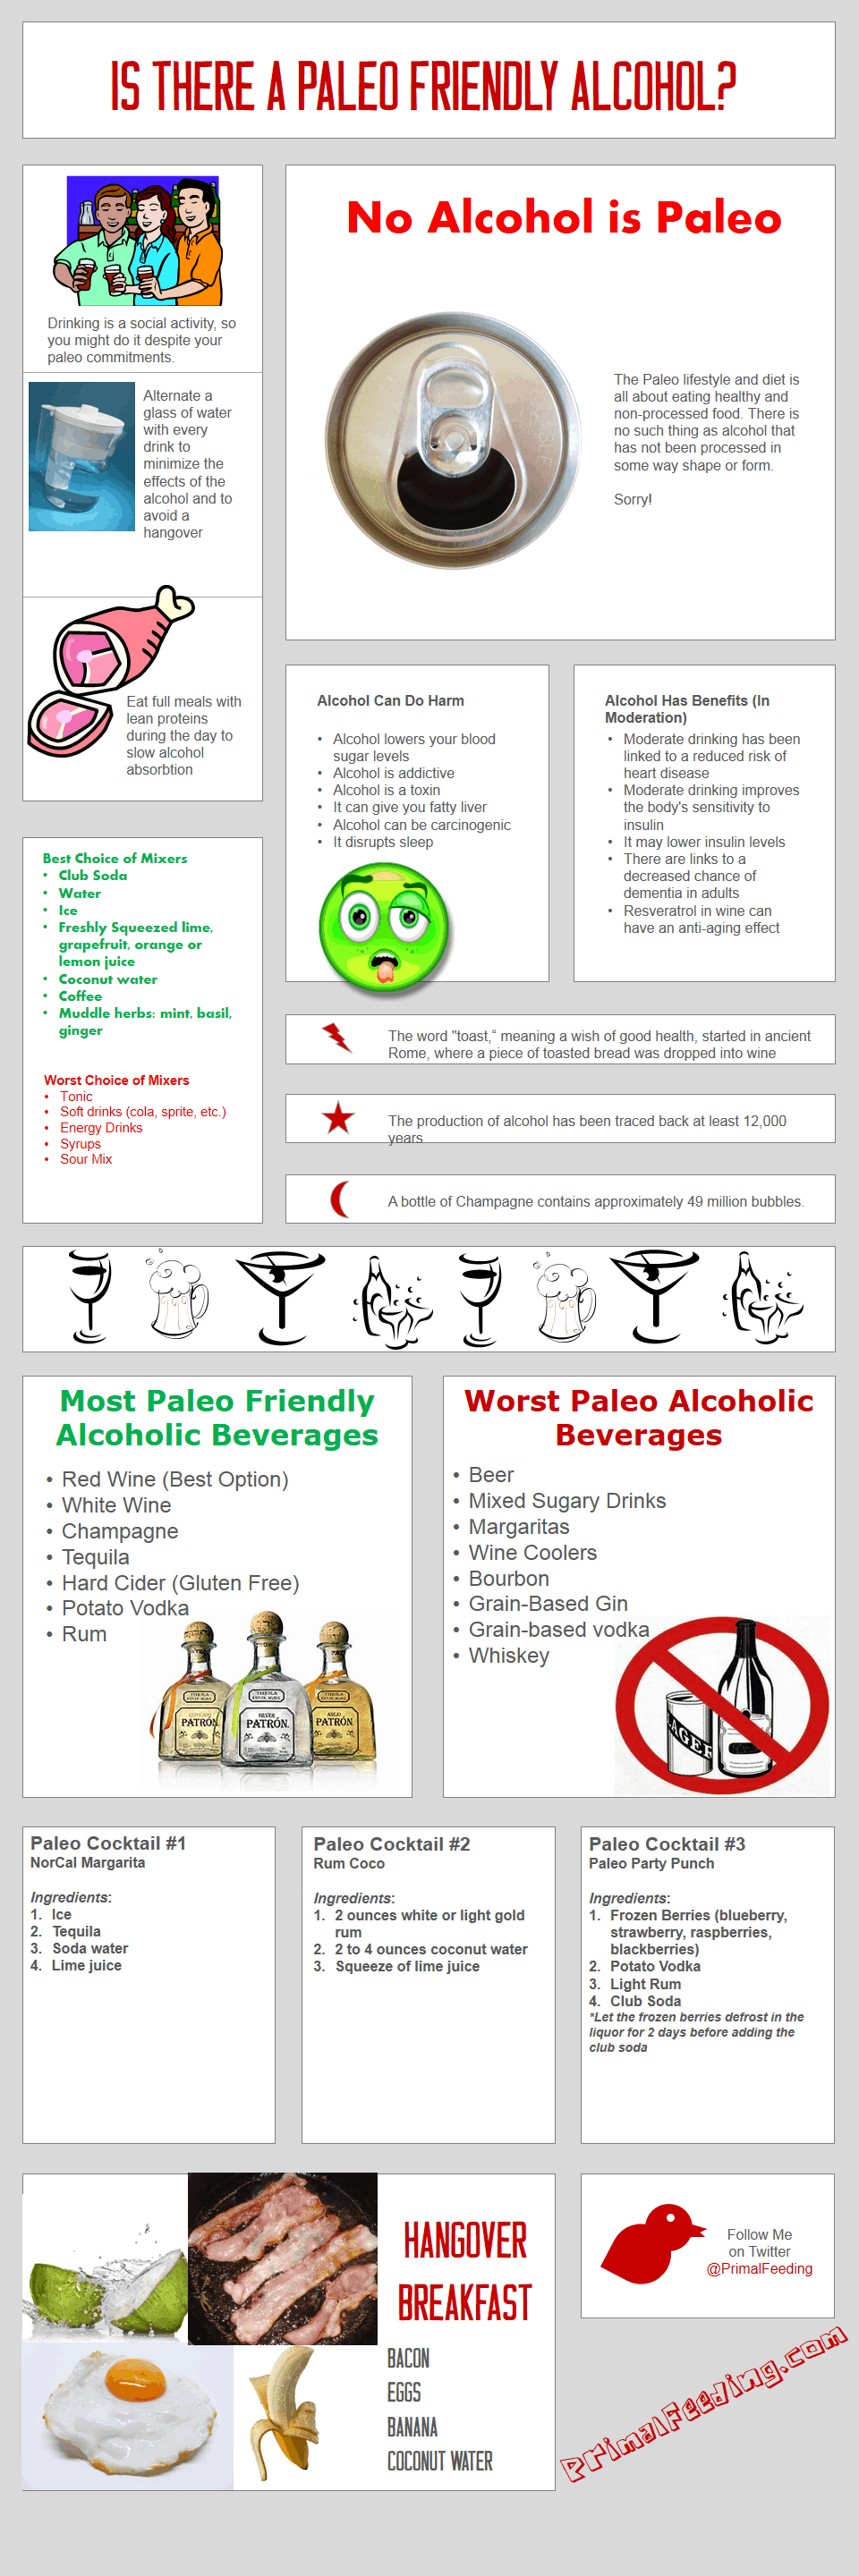 Paleo Friendly Alcohol Guide [Infographic]